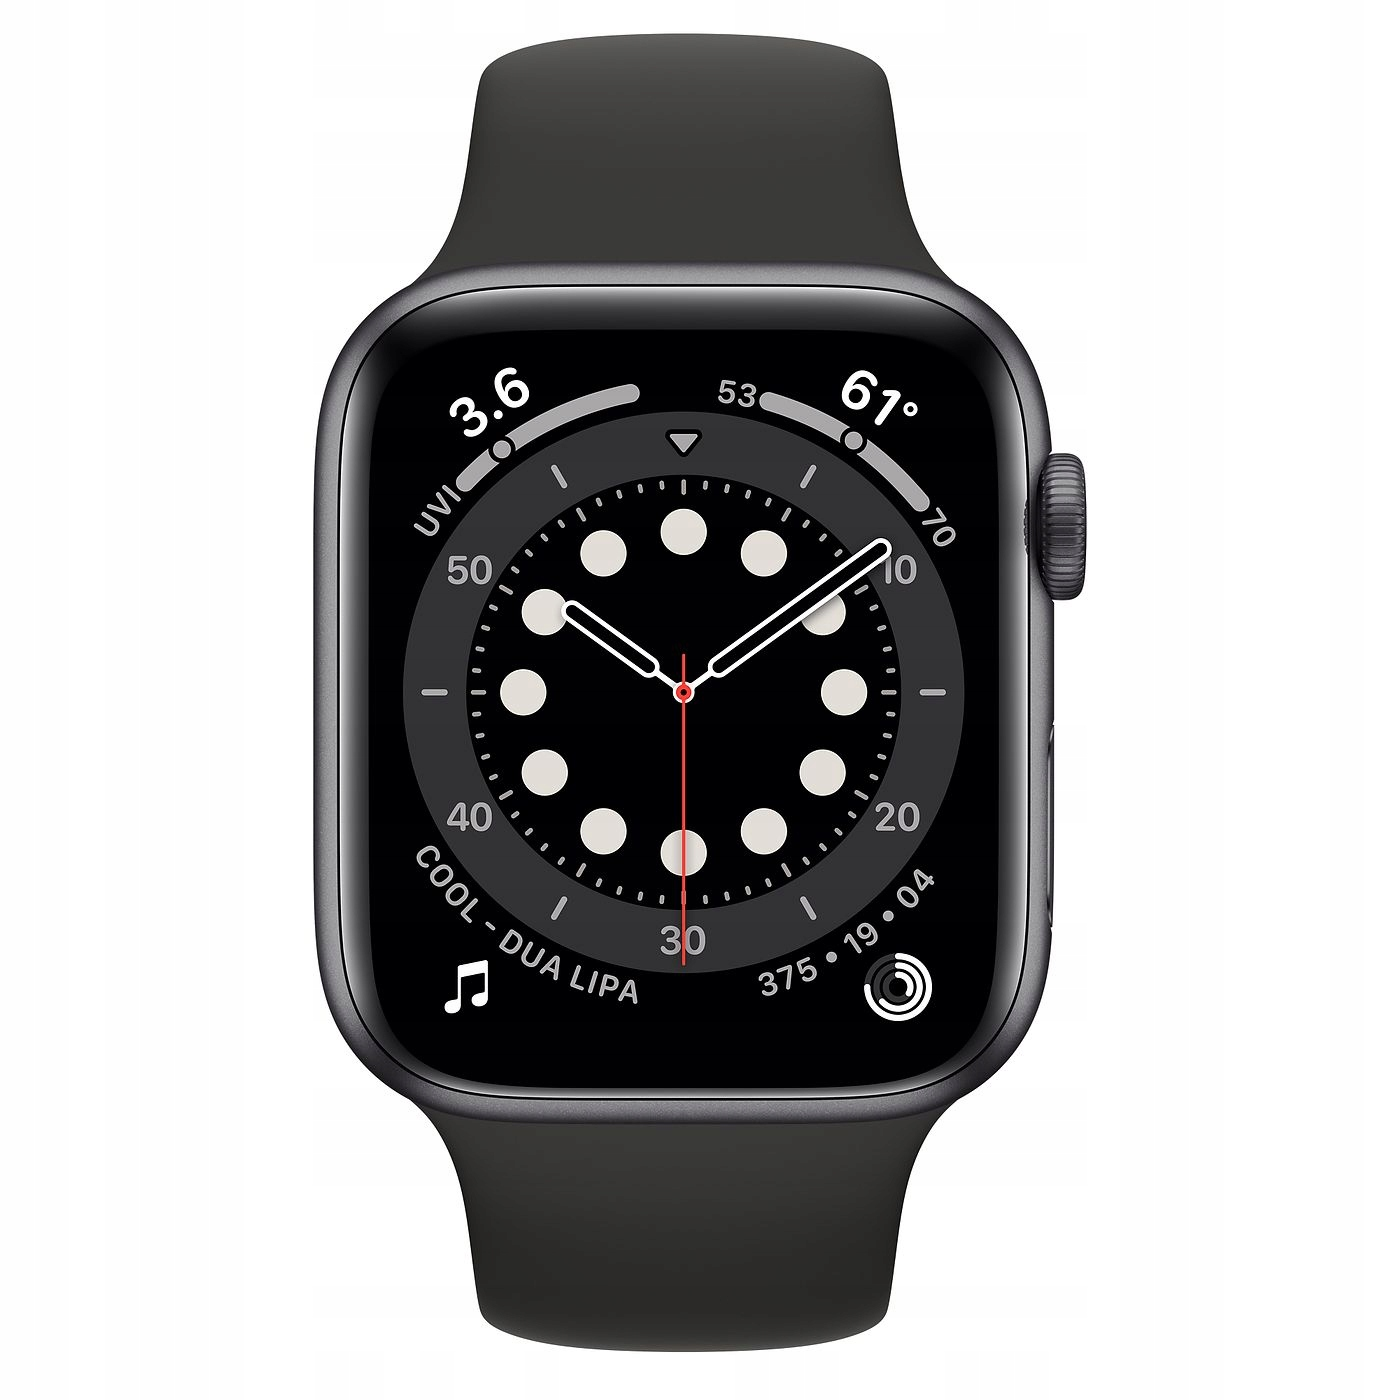 Apple Watch 6 44mm czarny od ręki FV23% Model Apple Watch 6 44mm